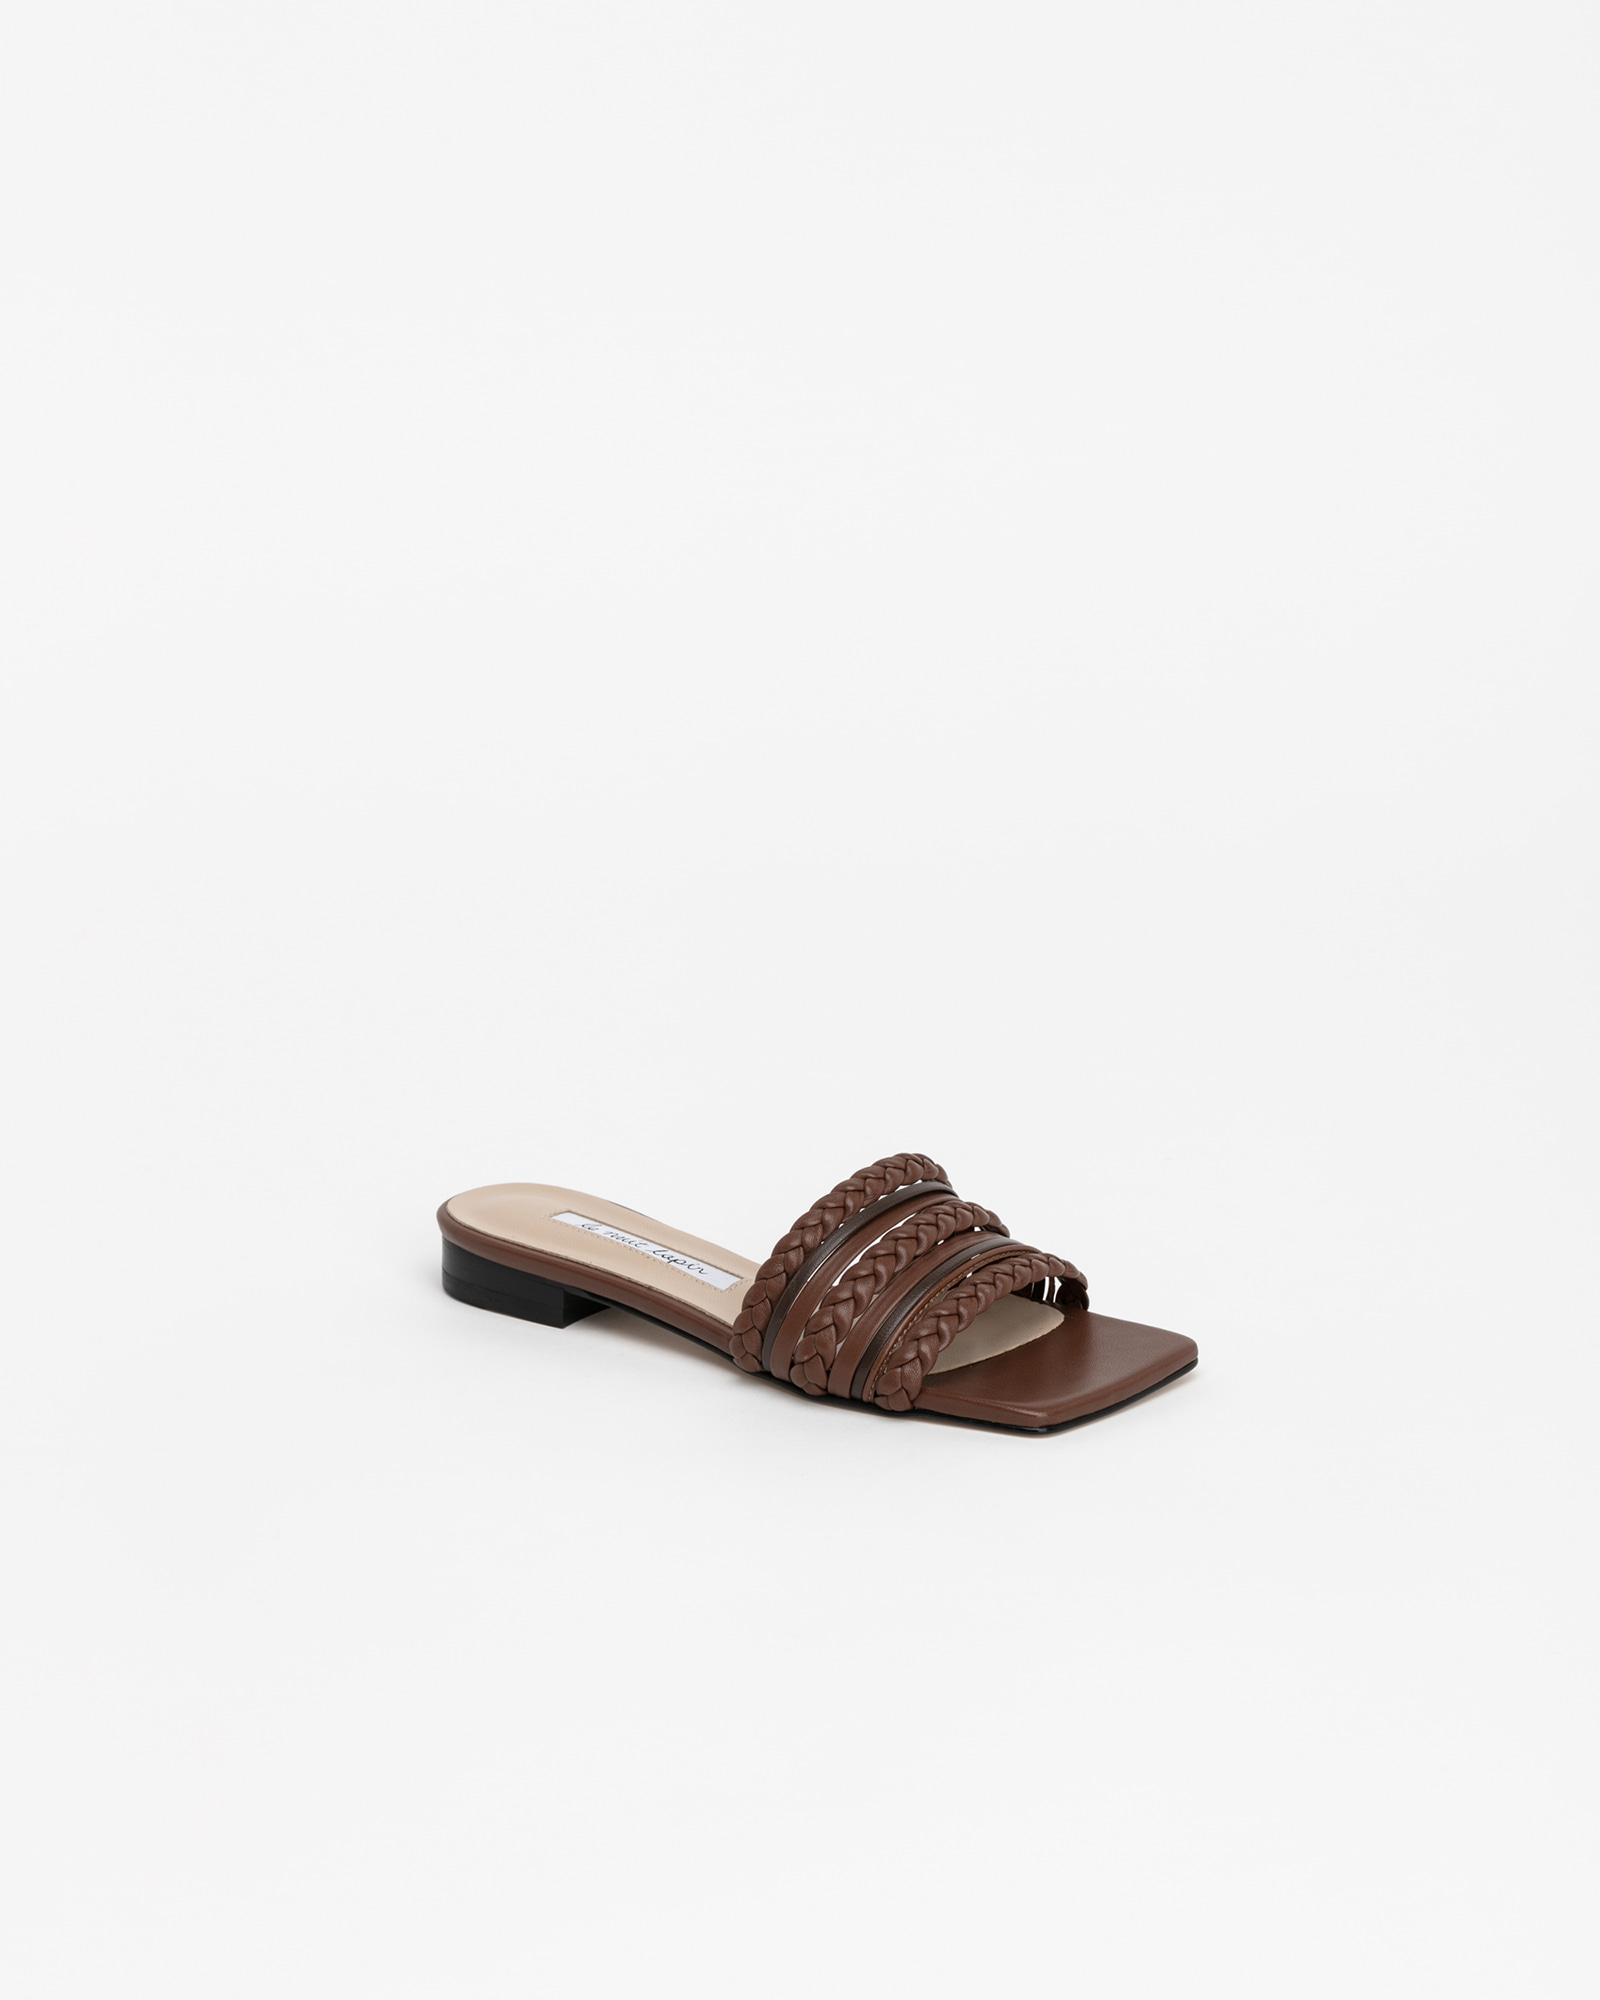 Knotter Woven Slides in Brown Combination